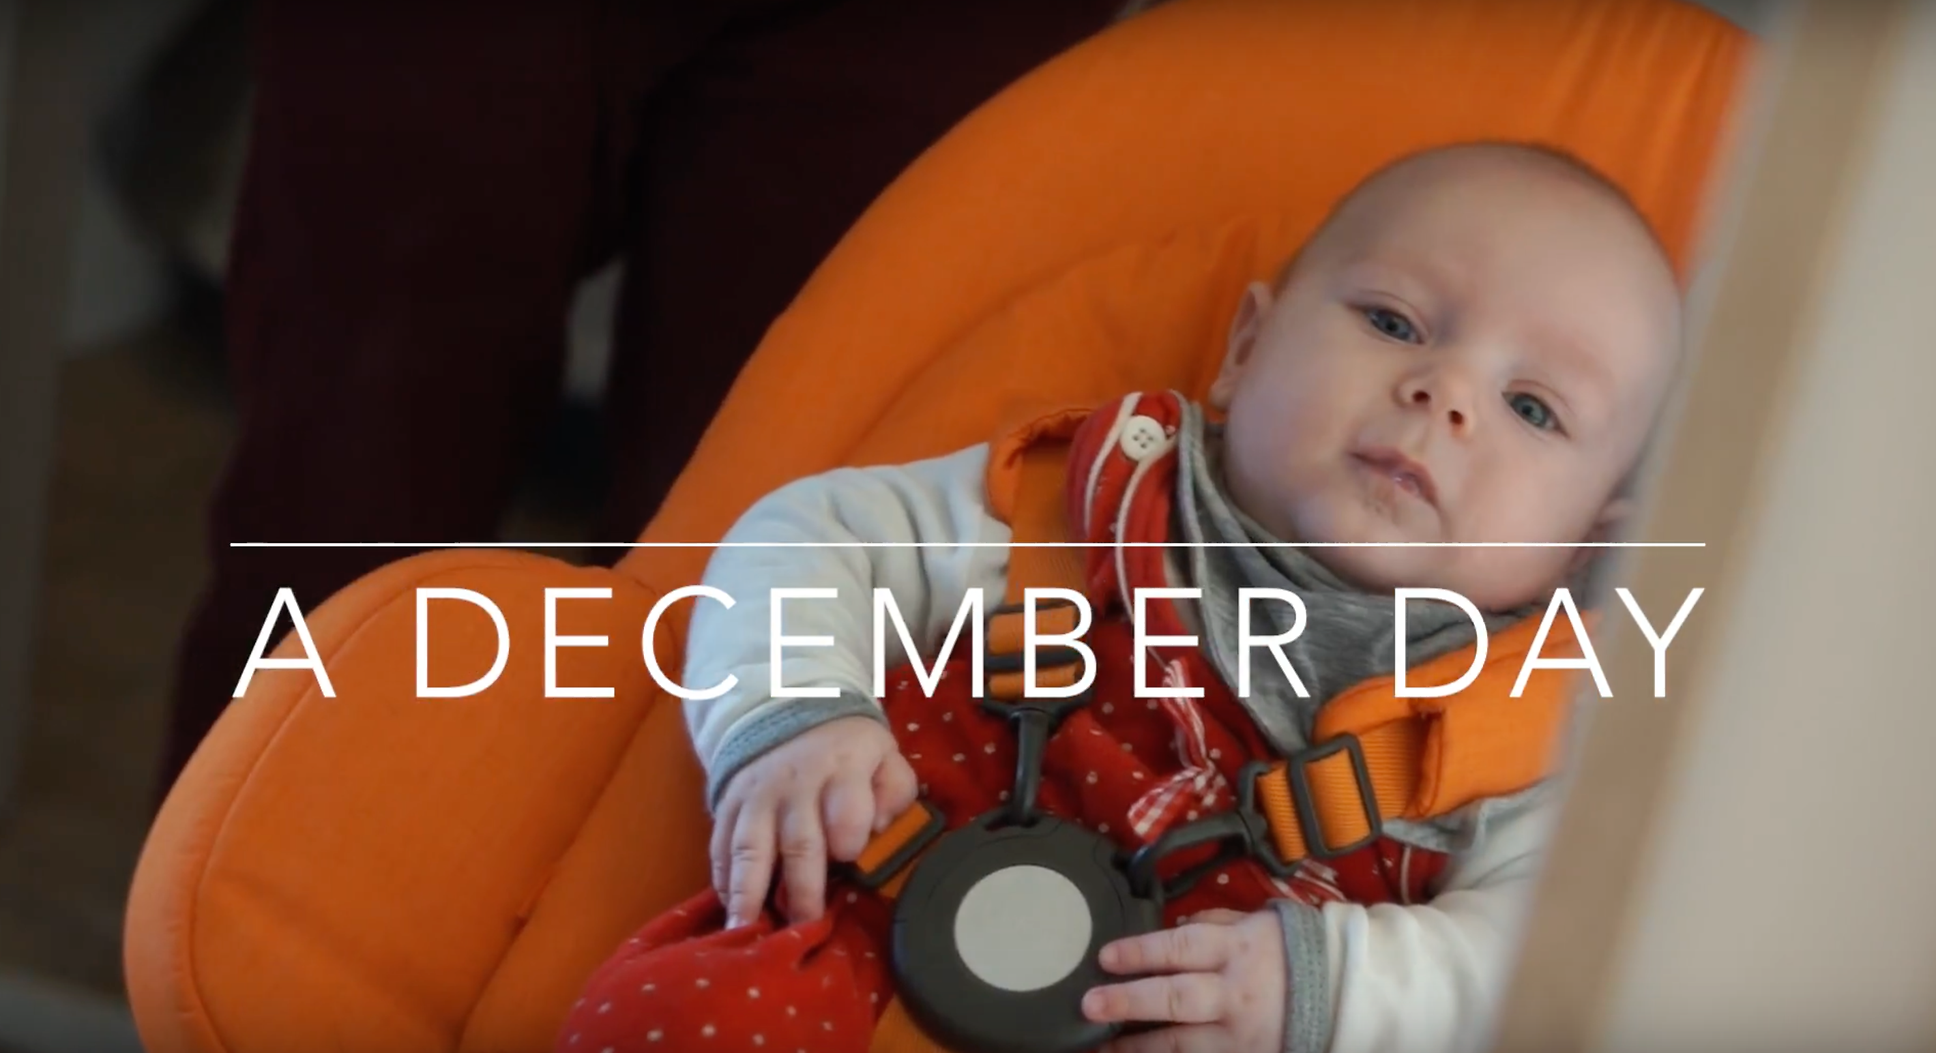 A Day in December (Video)